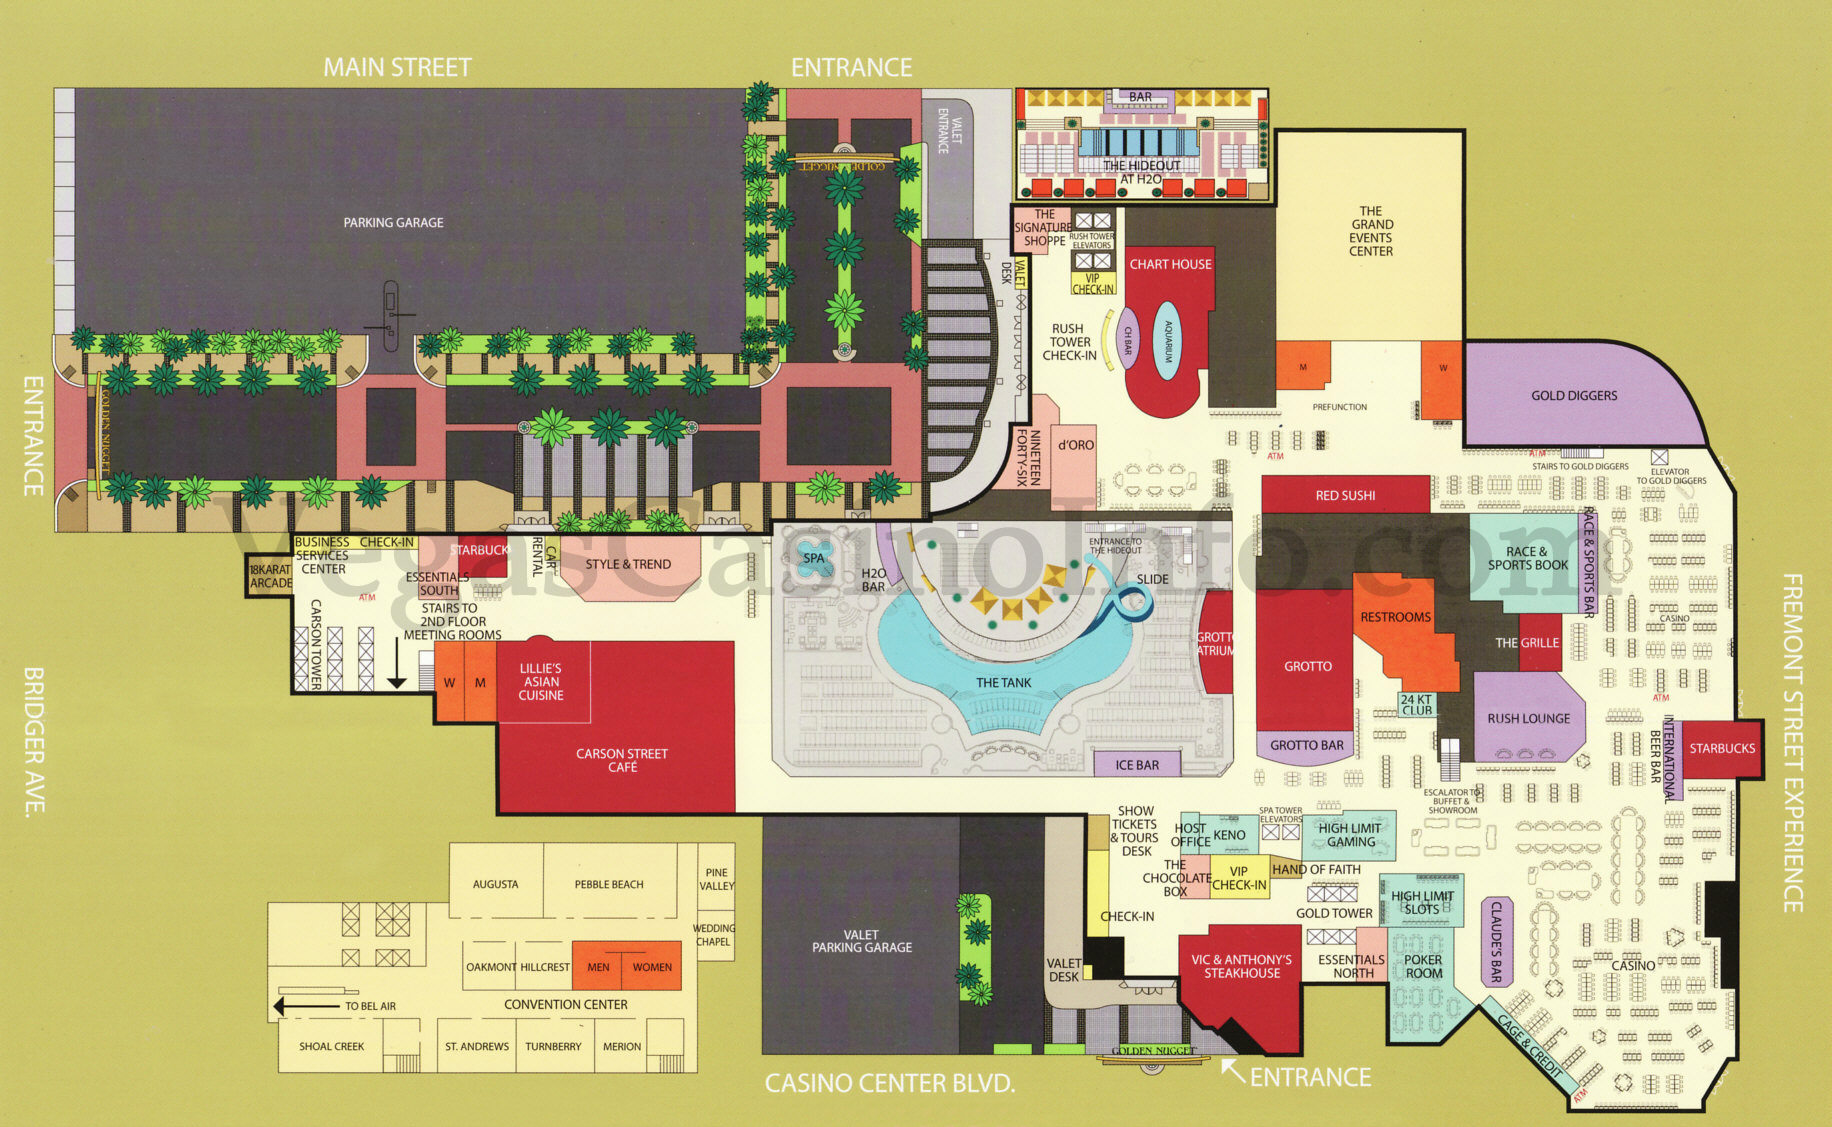 Jw Marriott Las Vegas Map.Las Vegas Casino Property Maps And Floor Plans Vegascasinoinfo Com